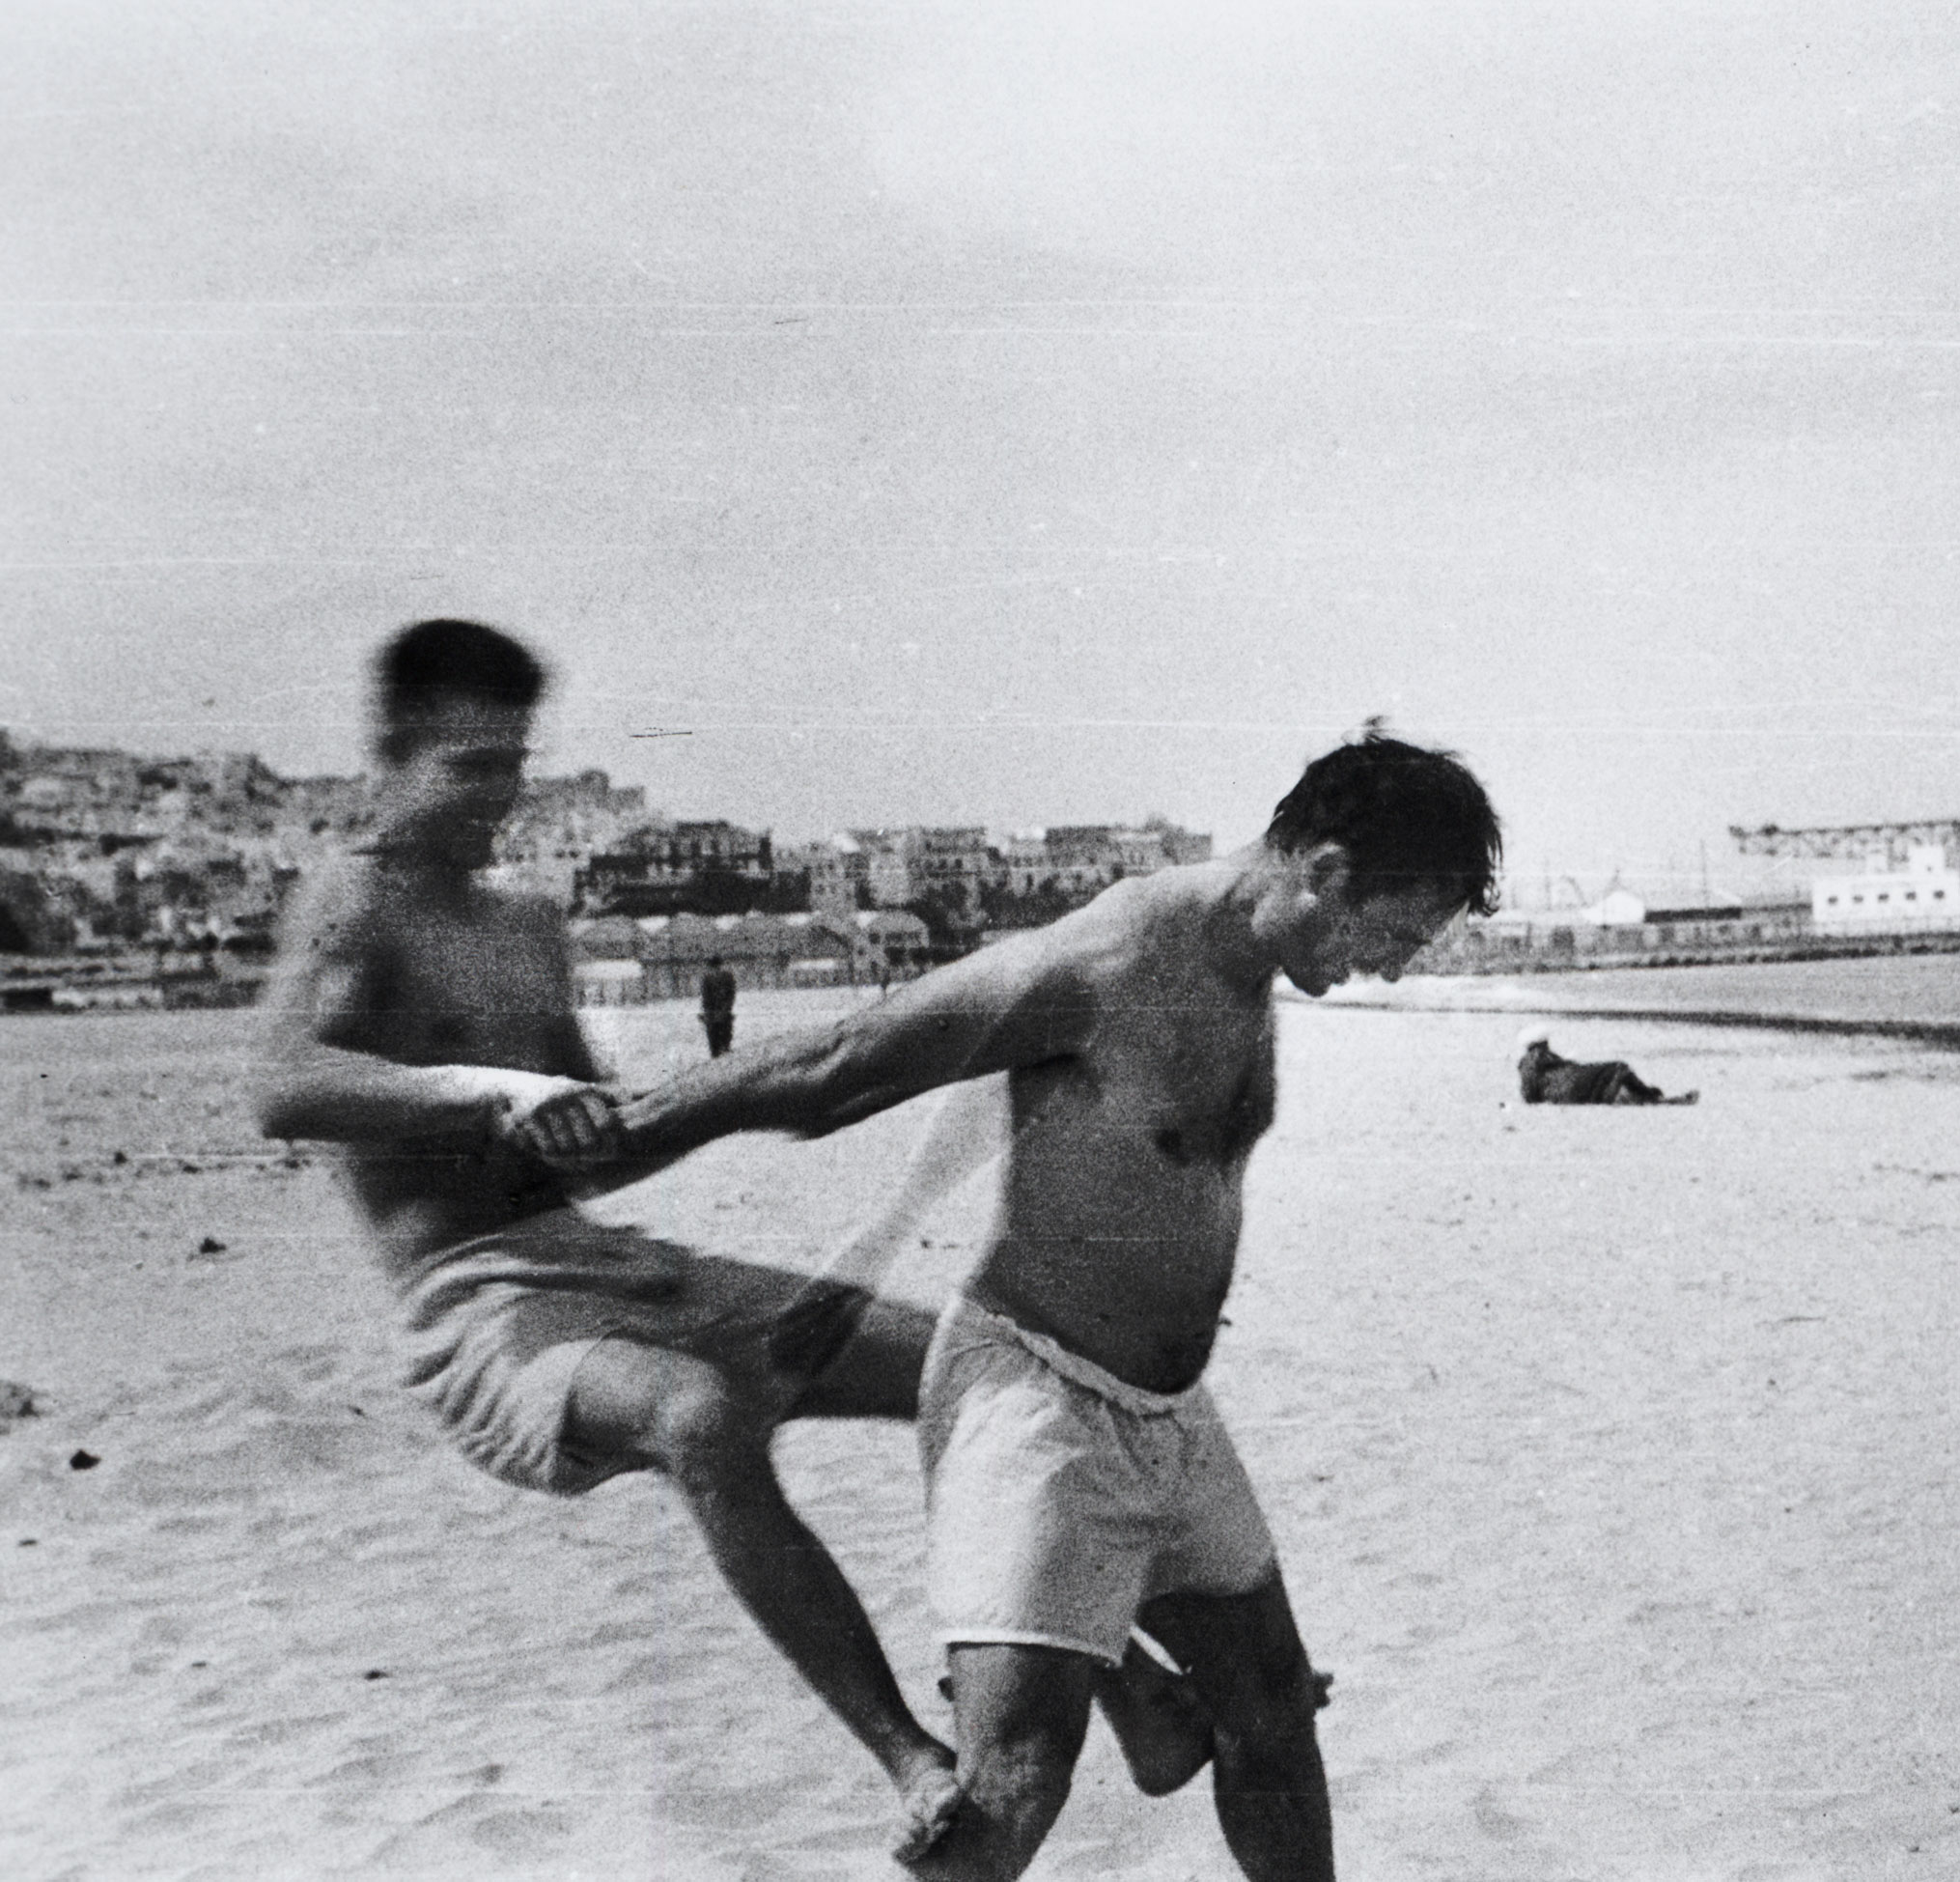 Two men in bathing suits embracing